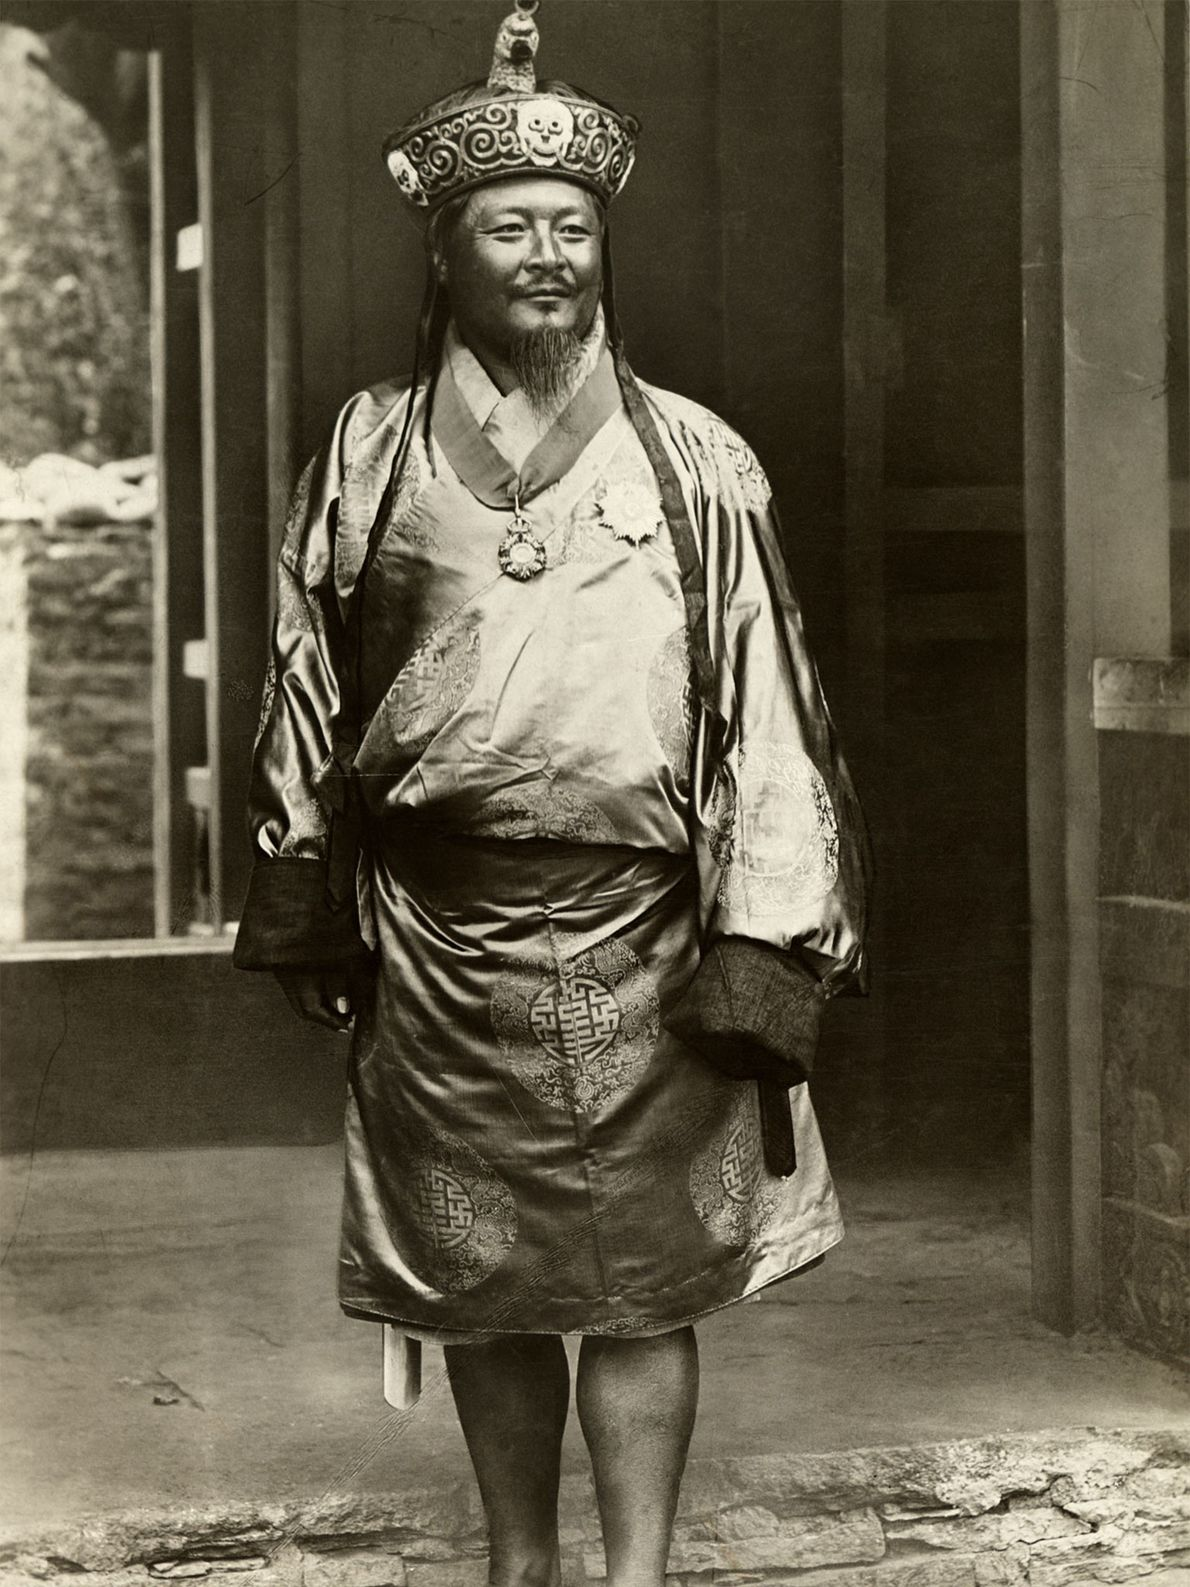 Uygen Wangchuk, the first king of Bhutan, poses for a photograph in royal clothes and a ...